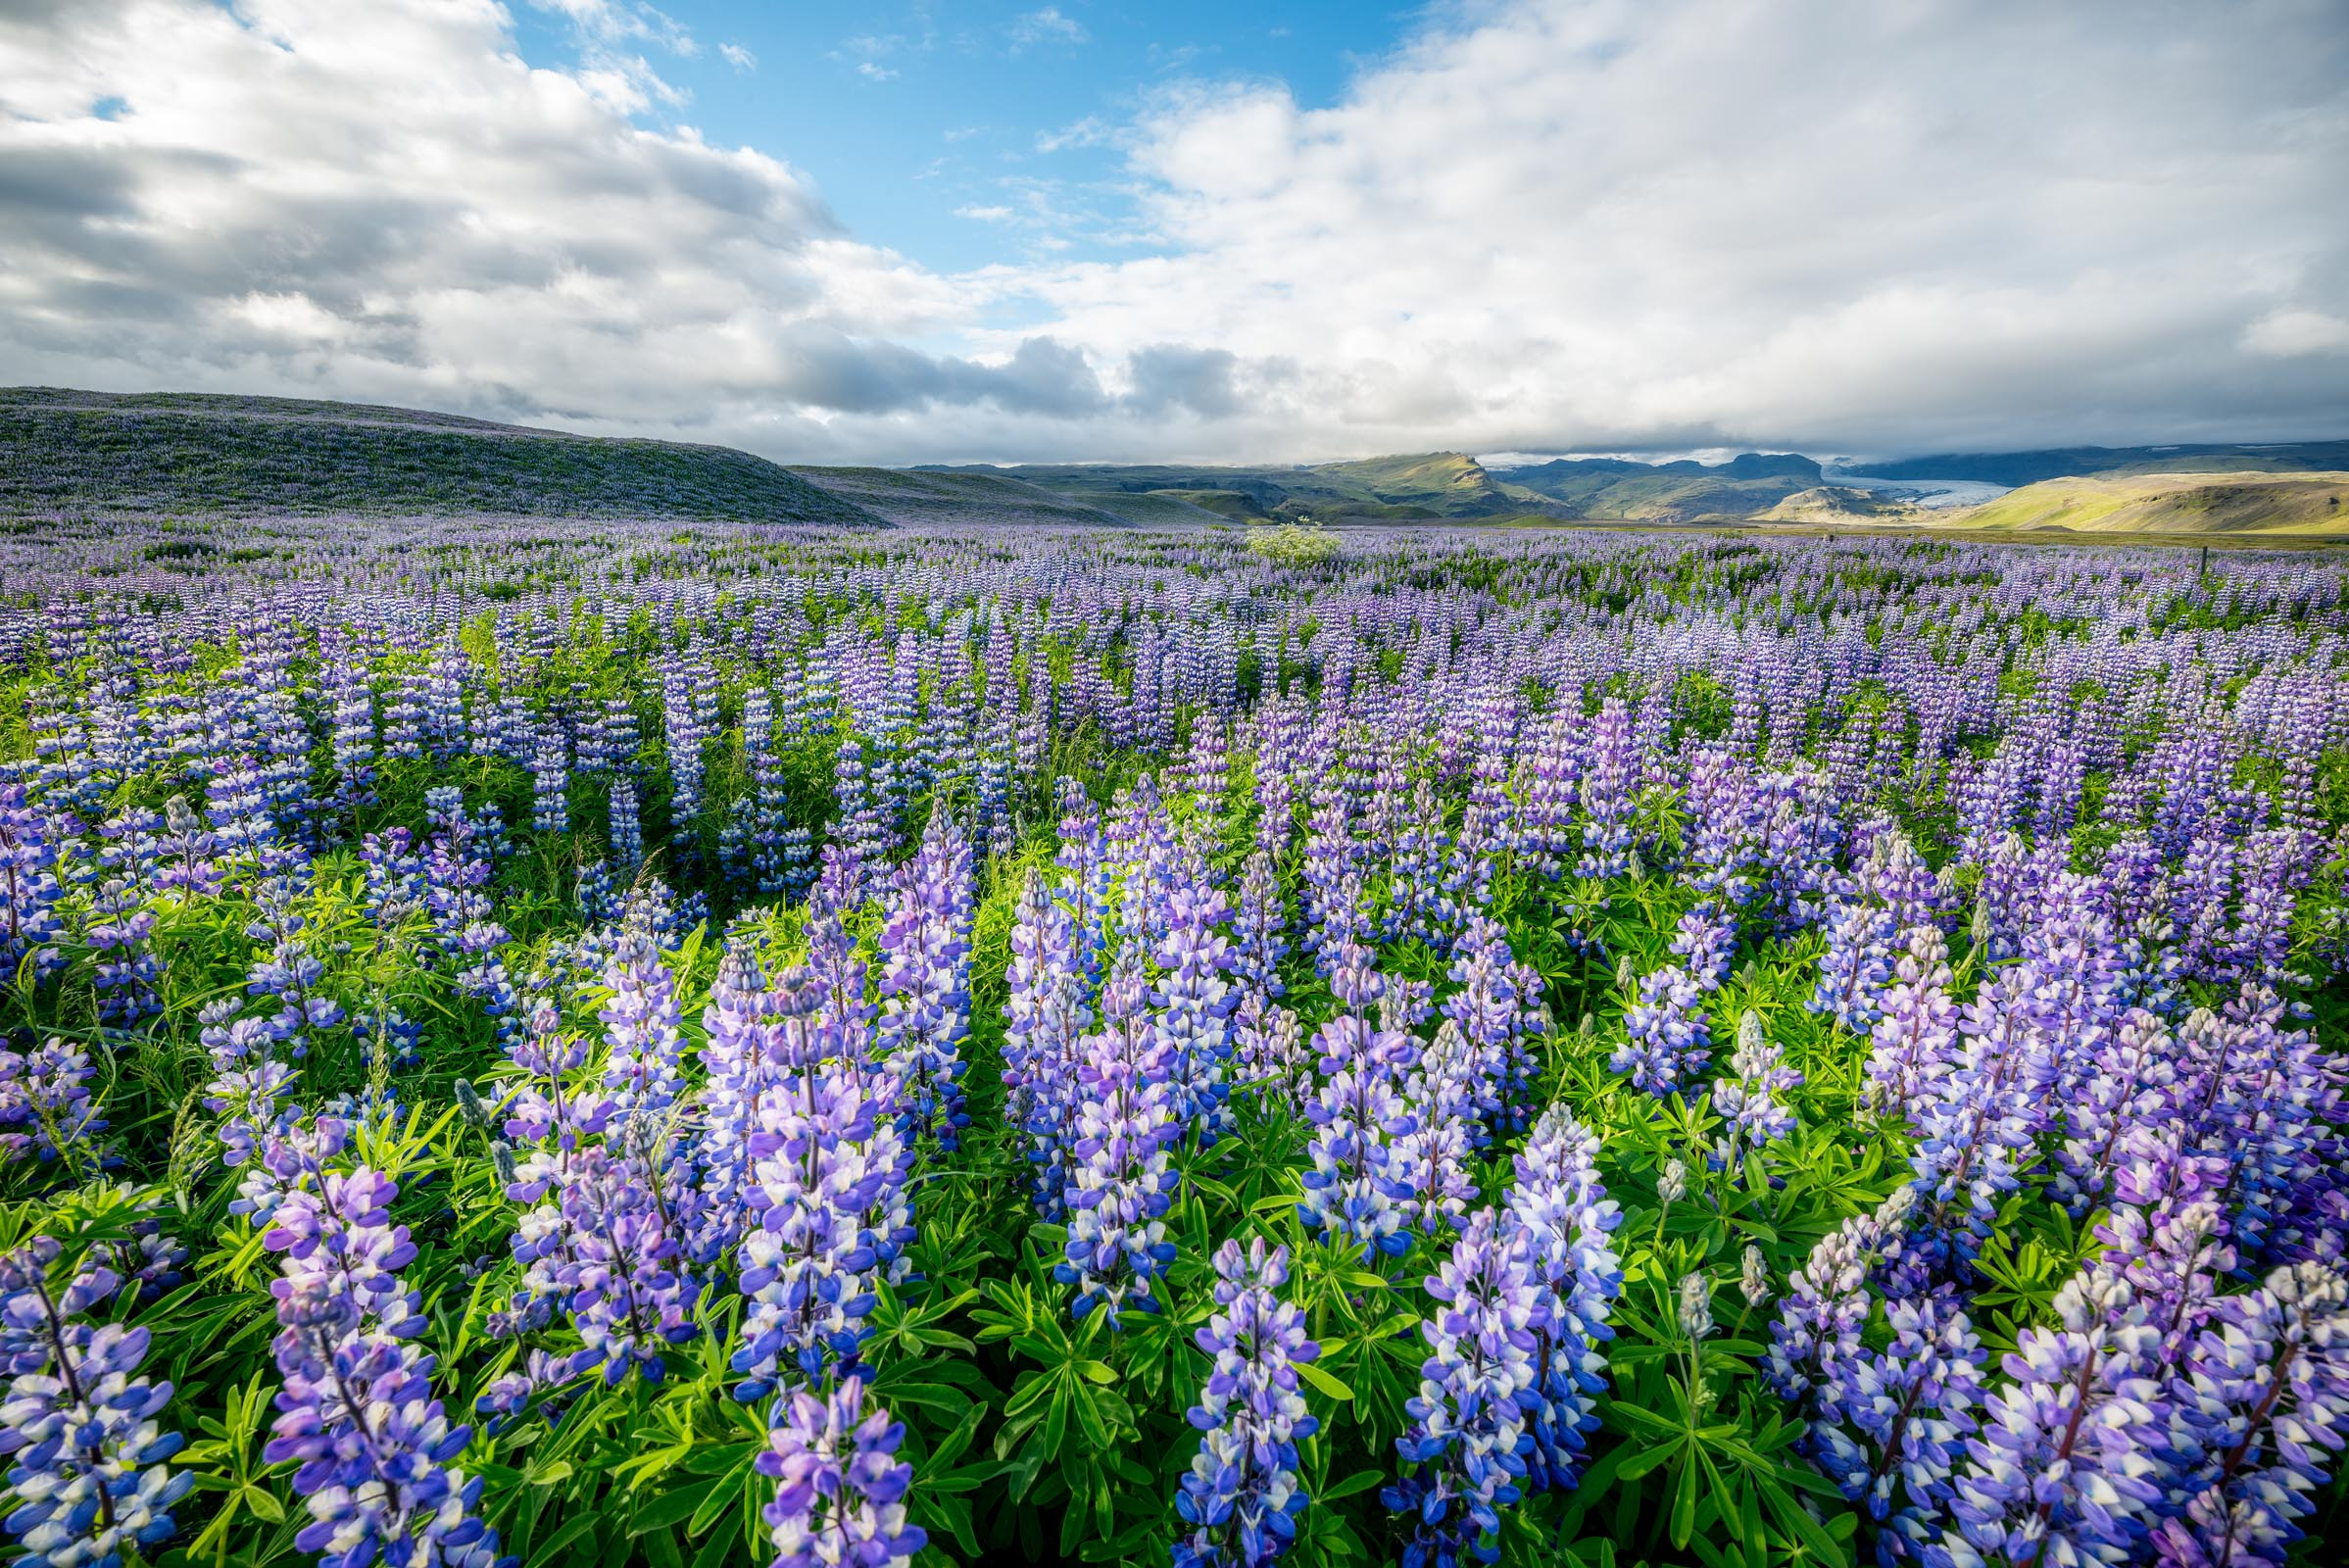 Photograph of Lupine Field in Ring Road, Iceland by Brent Goldman Photography